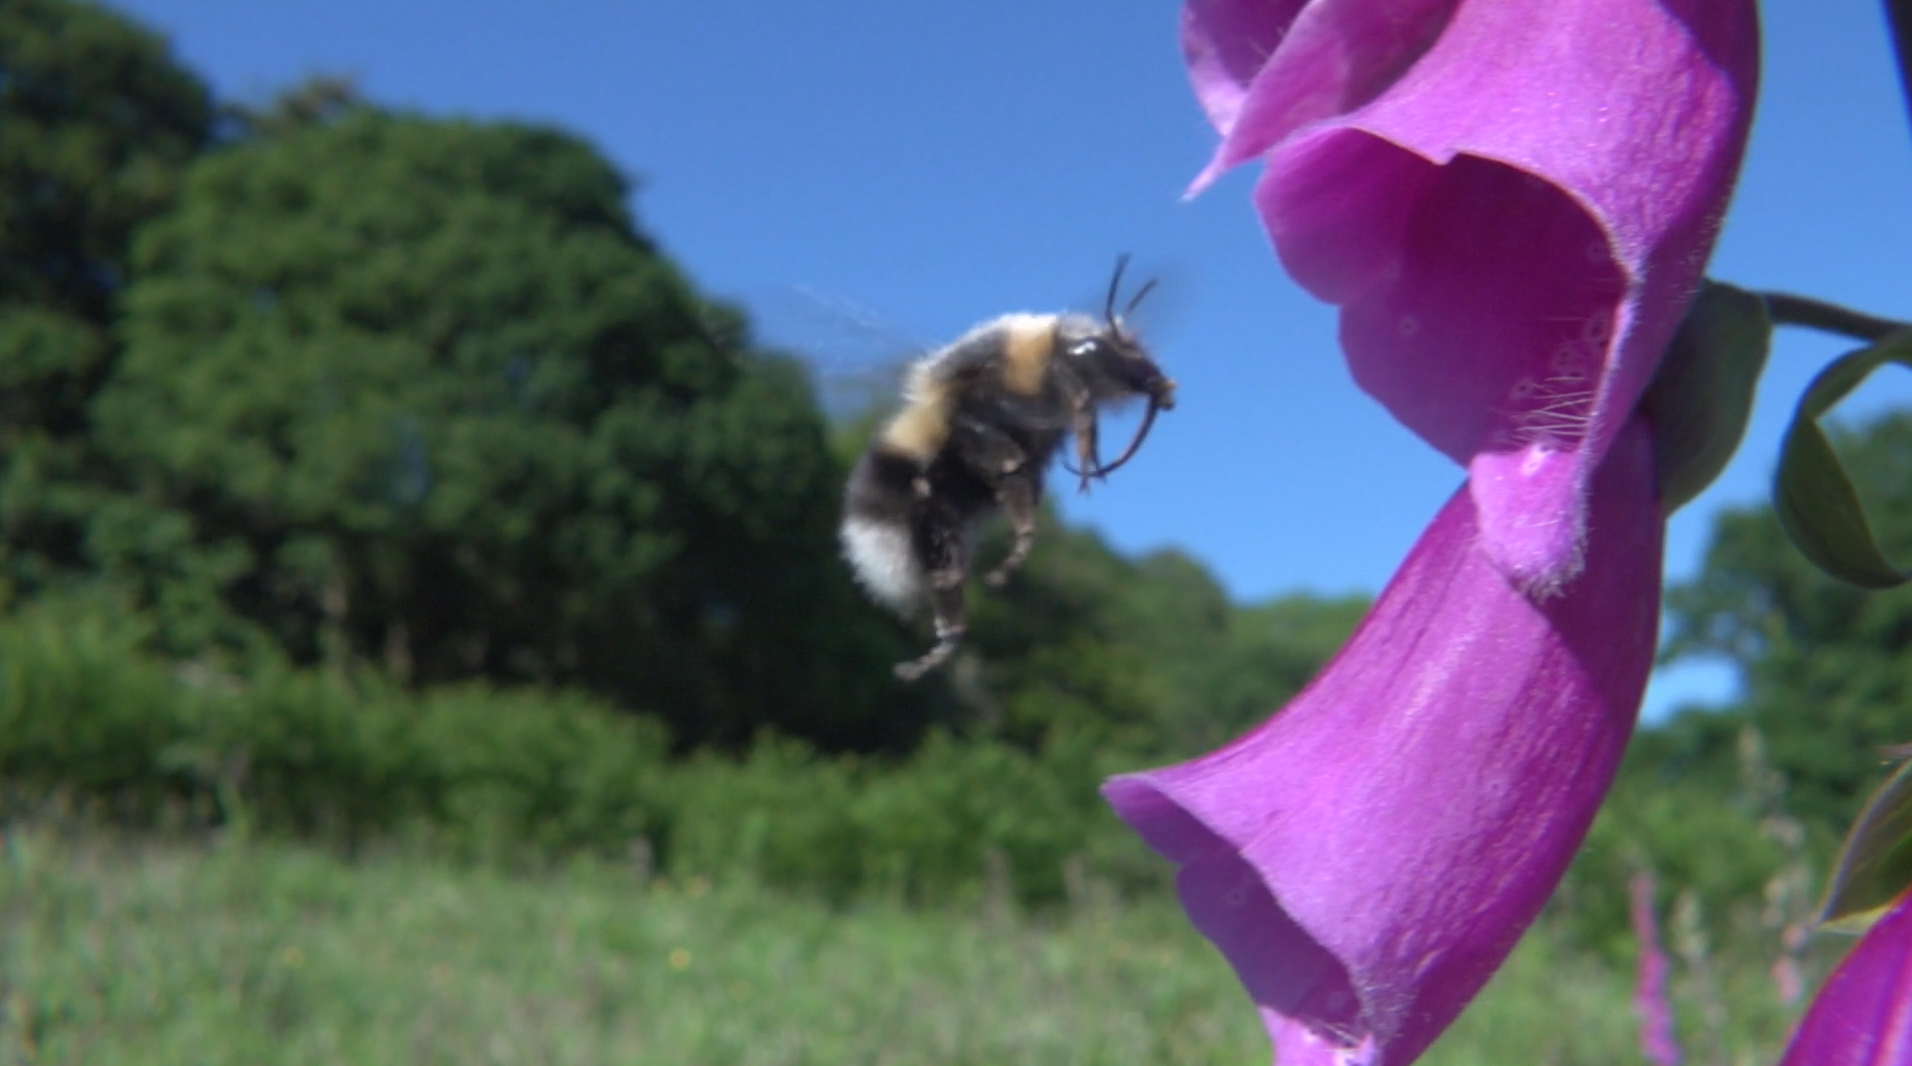 Bumblebee nectar feeding with its long tongue on Foxglove, it falls out of the flower covered in pollen